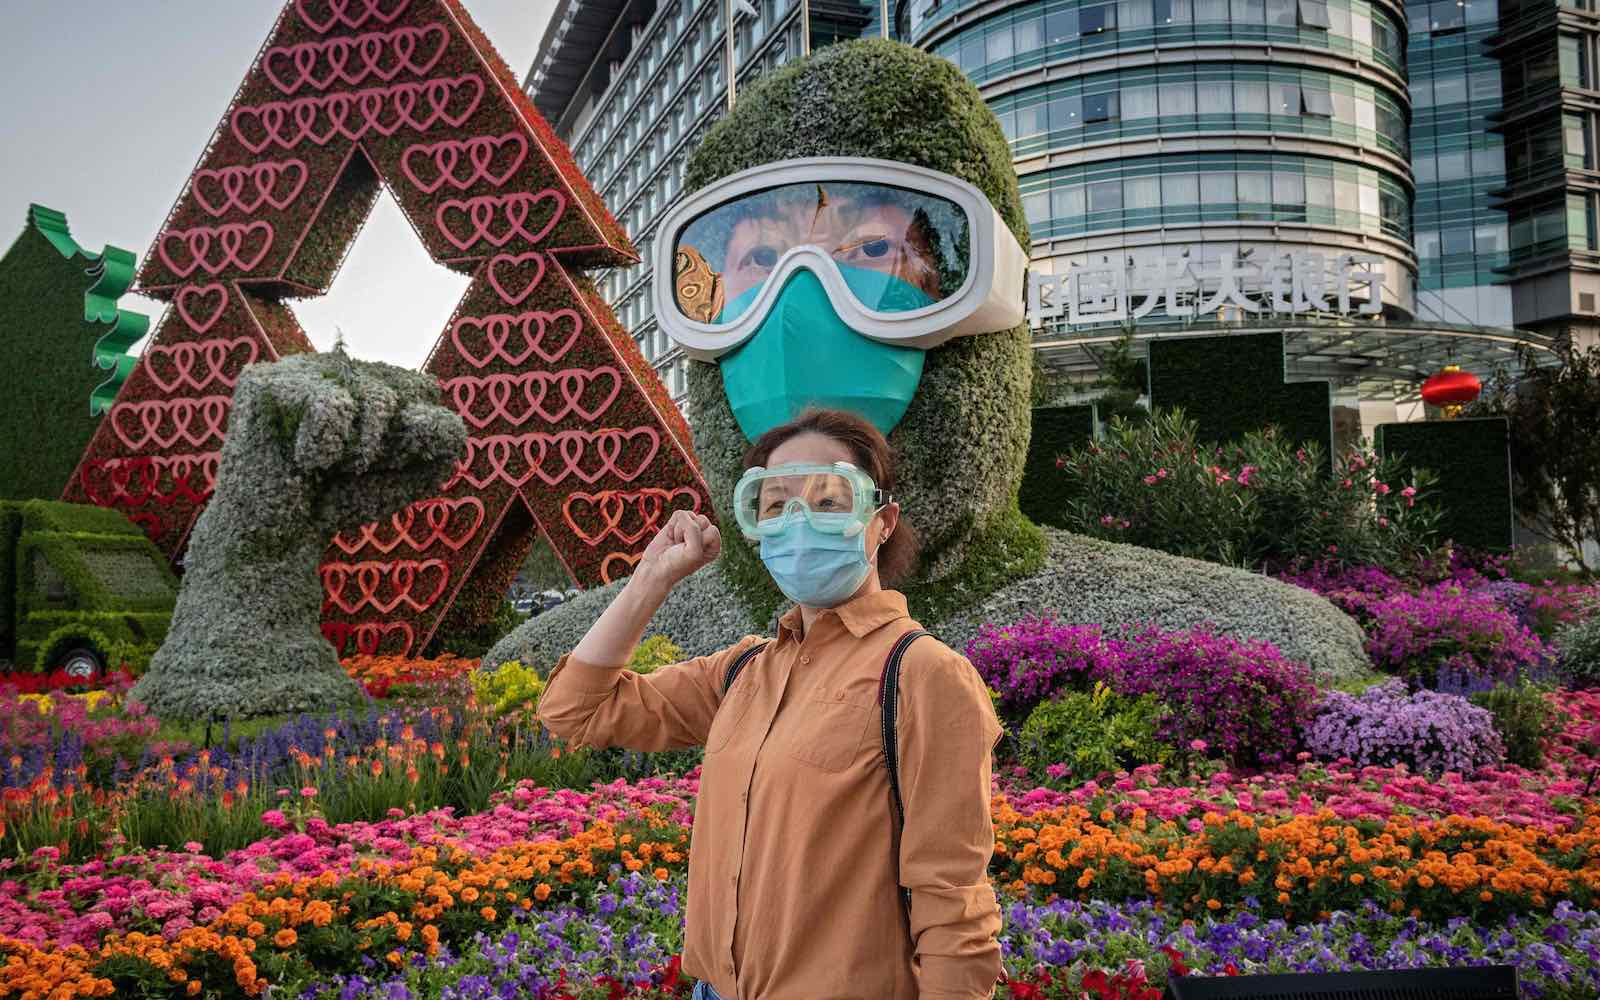 A woman poses in front of a flower display dedicated to frontline healthcare workers during the Covid-19 pandemic, Beijing, 29 September 2020 (Nicolas Asfouri/AFP via Getty Images)